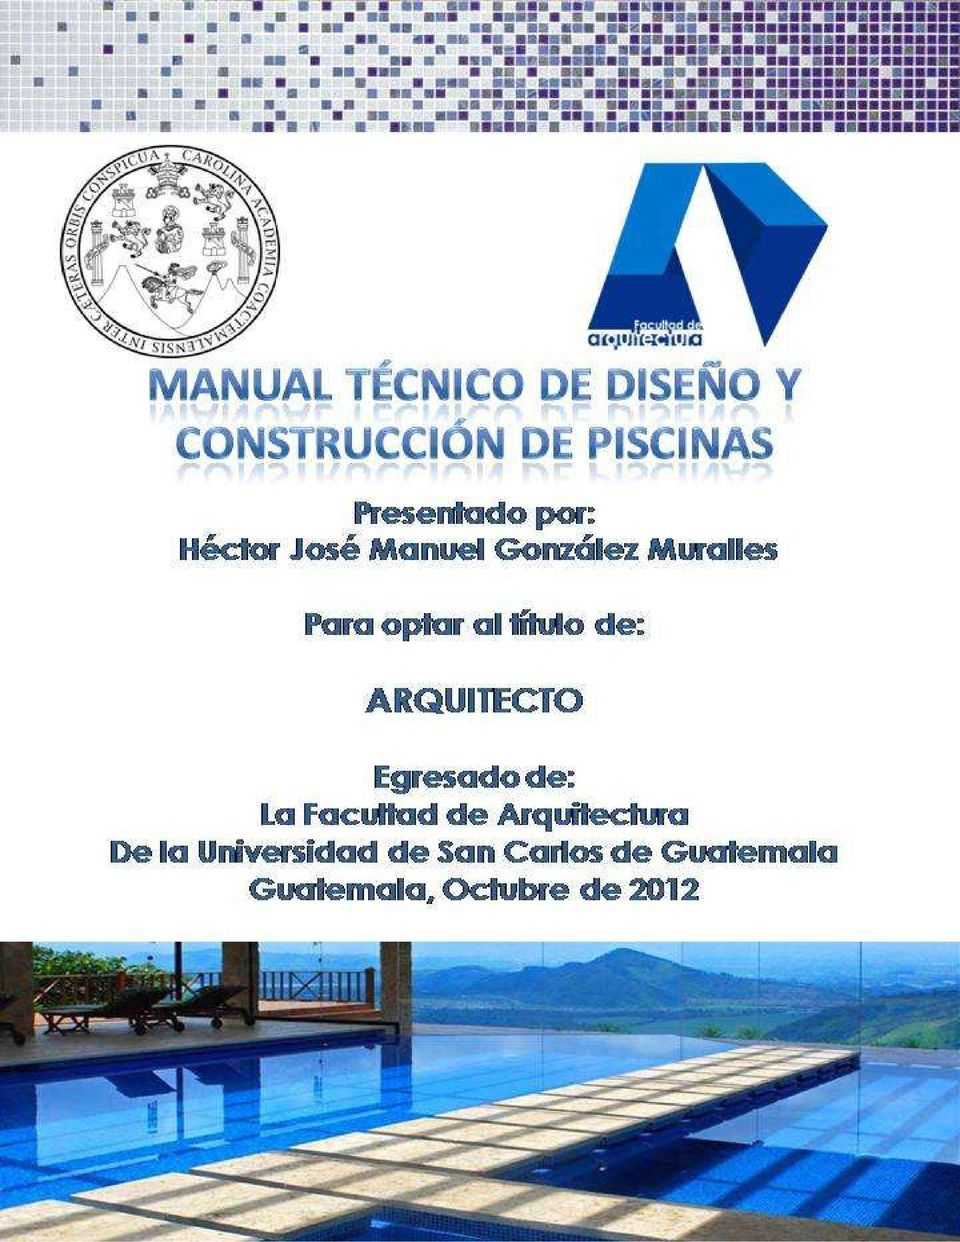 Manual t cnico de dise o y construcci n de piscinas for Manual de diseno y construccion de albercas